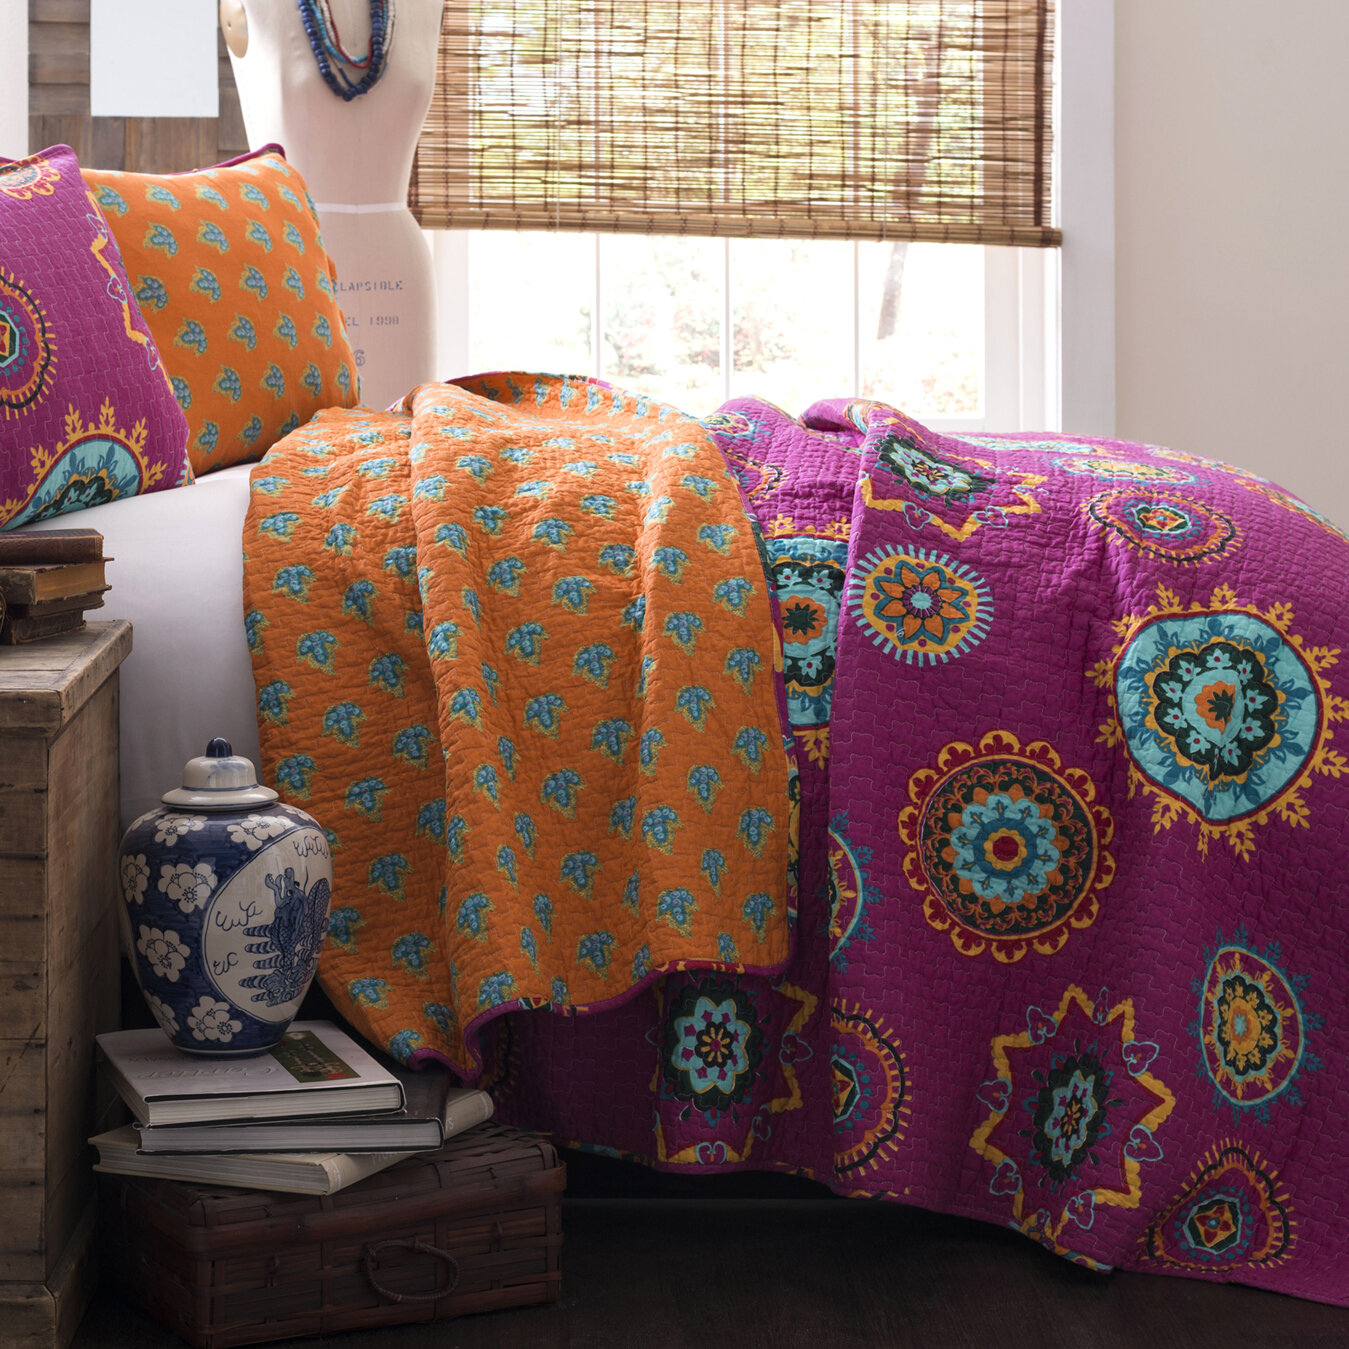 Orange Bedroom Accessories Wwe Bedroom Accessories Curtains For Bedroom 2015 Color Ideas For Bedroom: Reversible Purple Orange Quilt Bedding Set